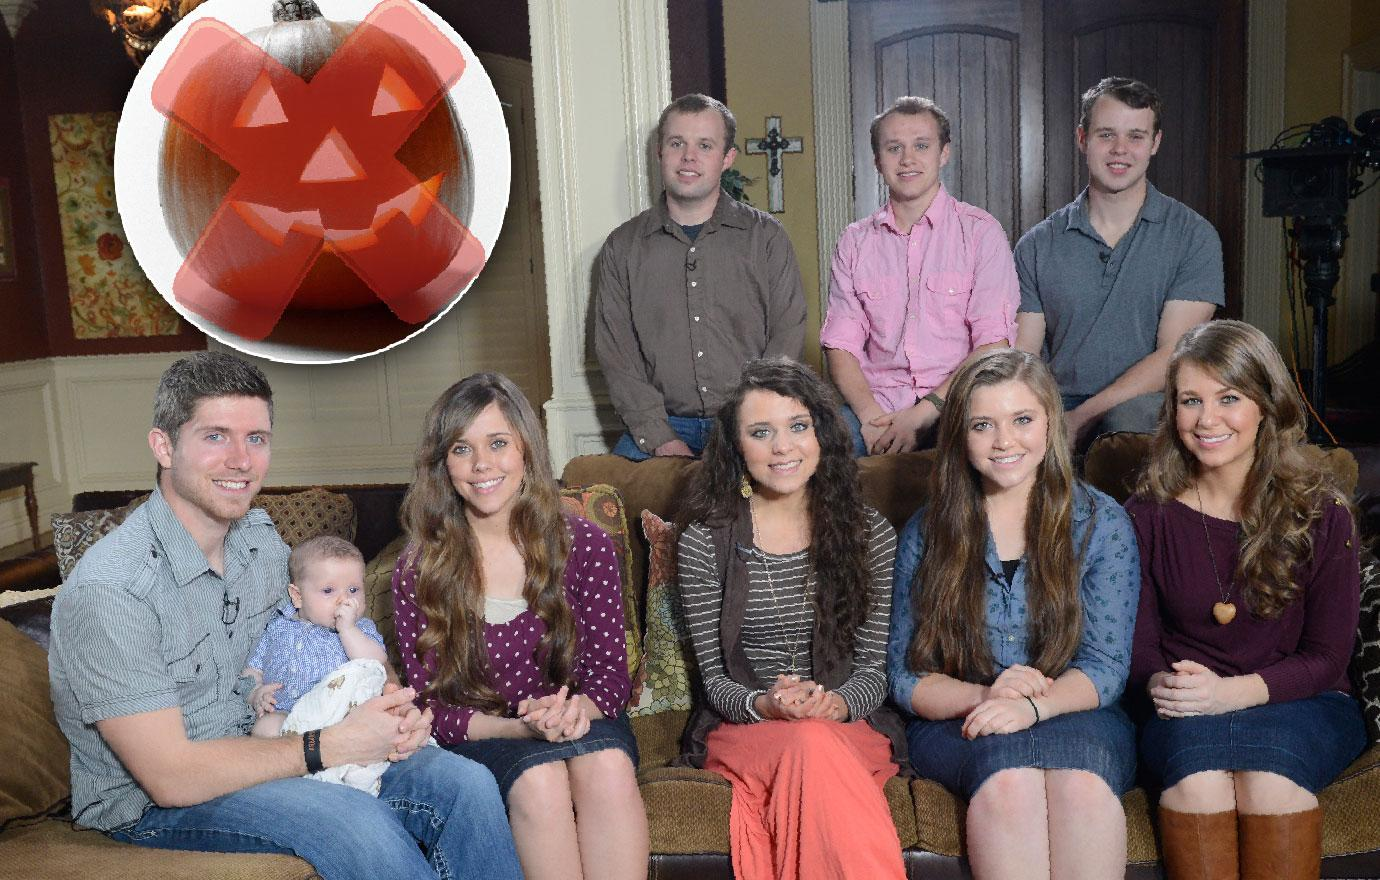 Duggars Don't Celebrate Halloween Demonic